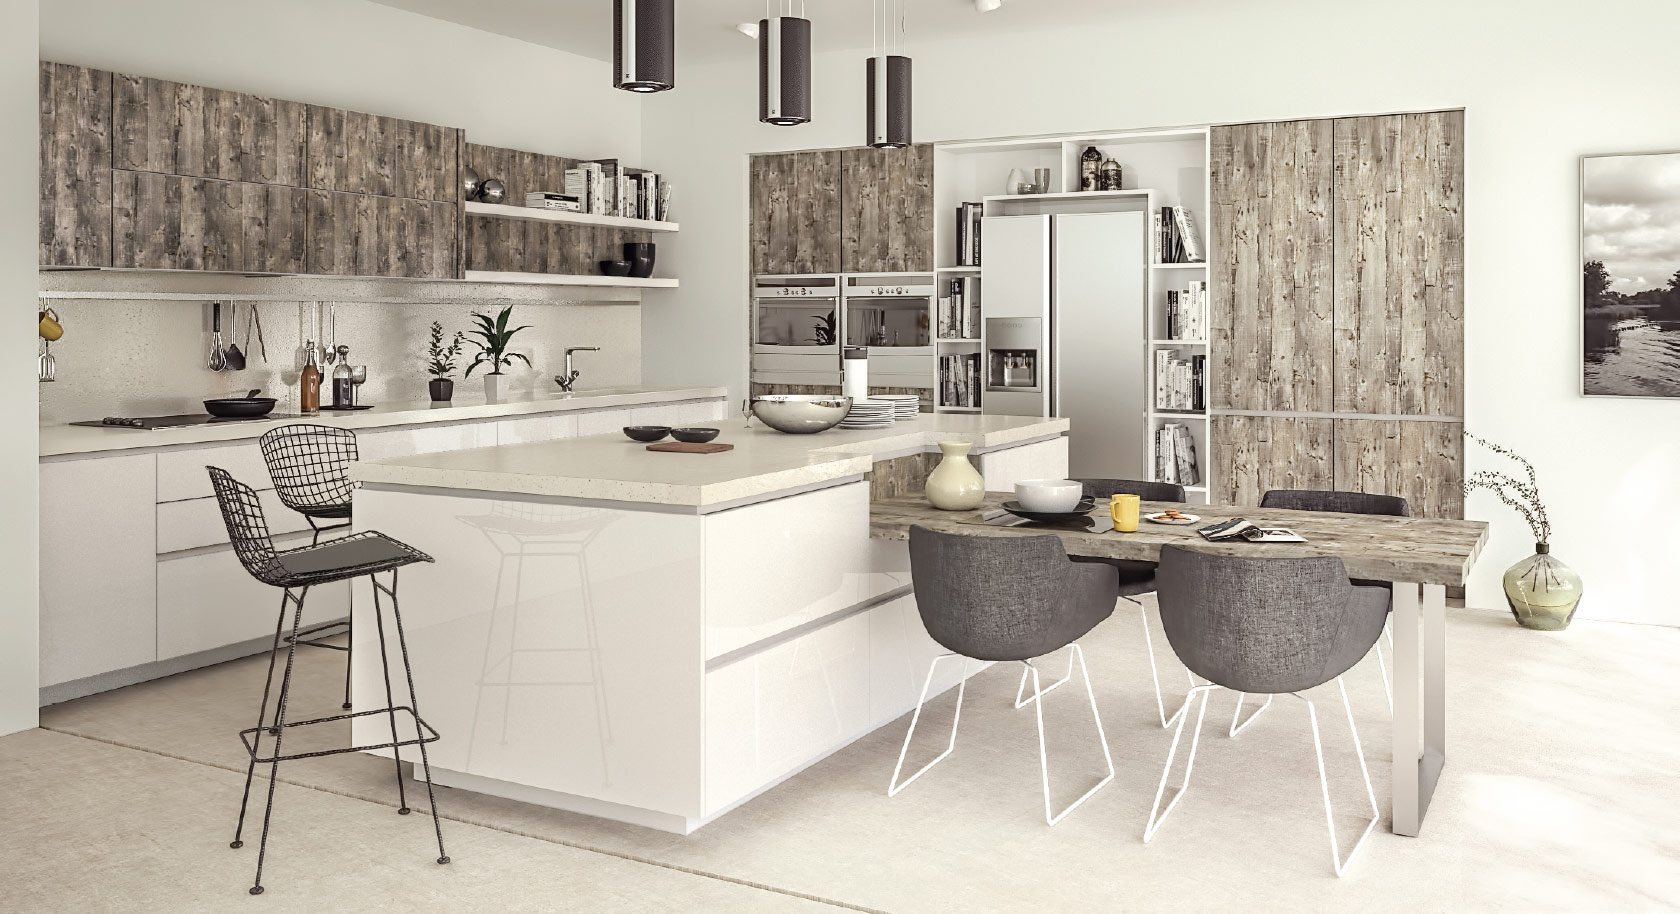 gola white  handle-less kitchen